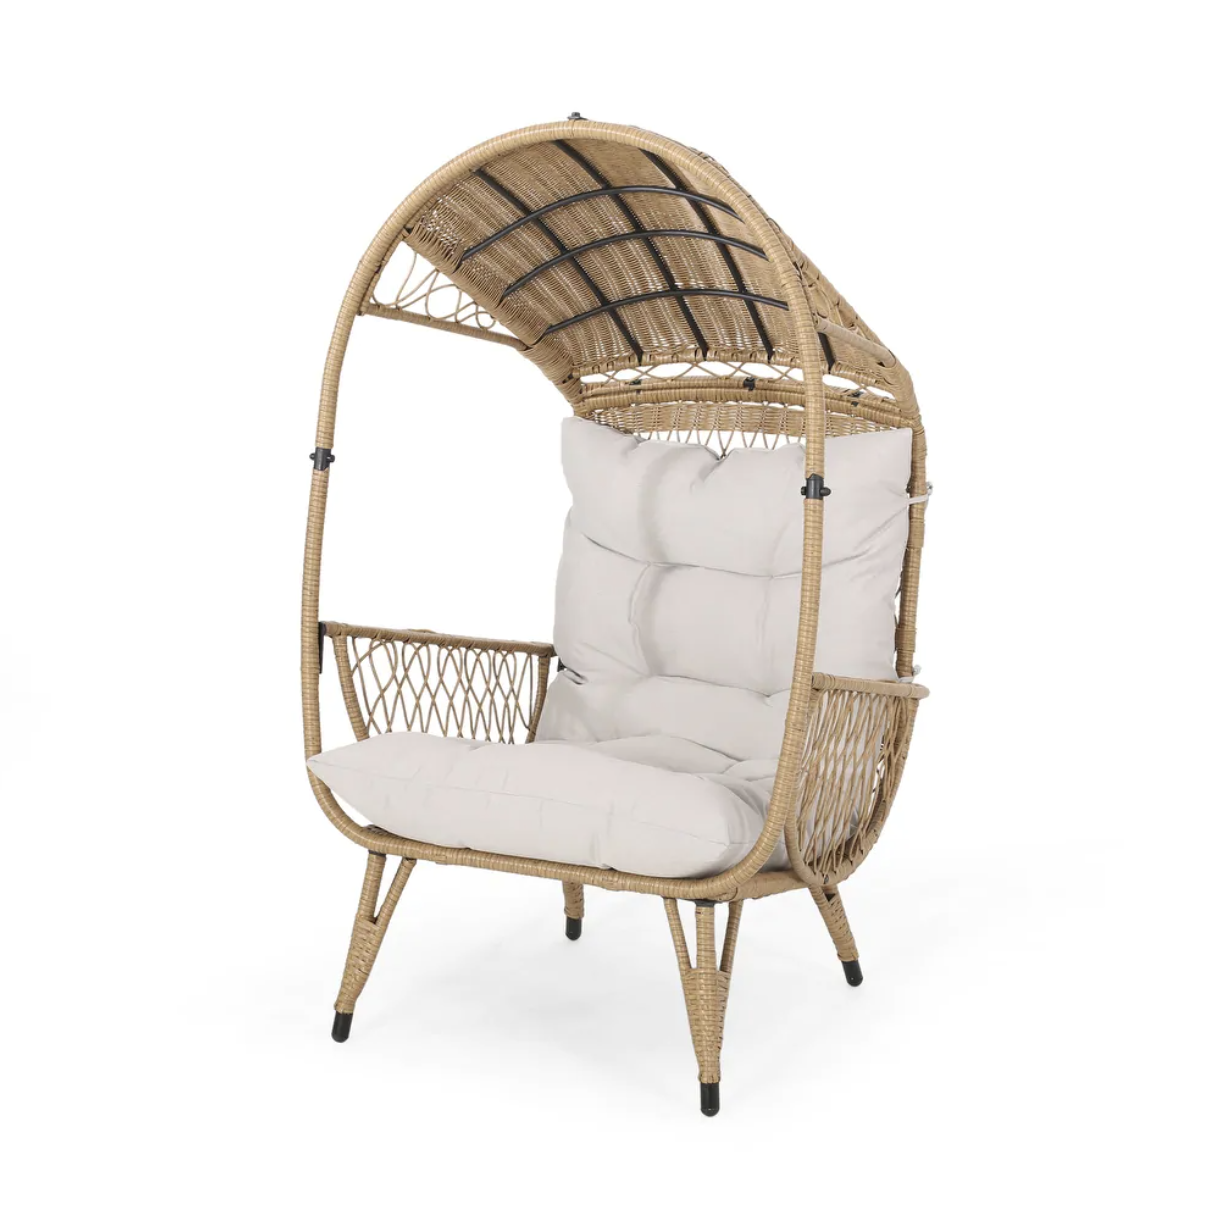 Malia Outdoor Cushioned Wicker Basket Chair by Christopher Knight Home - Light Brown + Beige Cushion, Target Southport Patio Egg Chair, Target Southport Patio Egg Chair dupes, affordable dupes for the Target Southport Patio Egg Chair,egg chair inspiration, egg chair home ideas, egg chairs, wicker egg chairs, hanging egg chairs, target dupes, target furniture dupes, target patio furniture, Red Soles and Red Wine